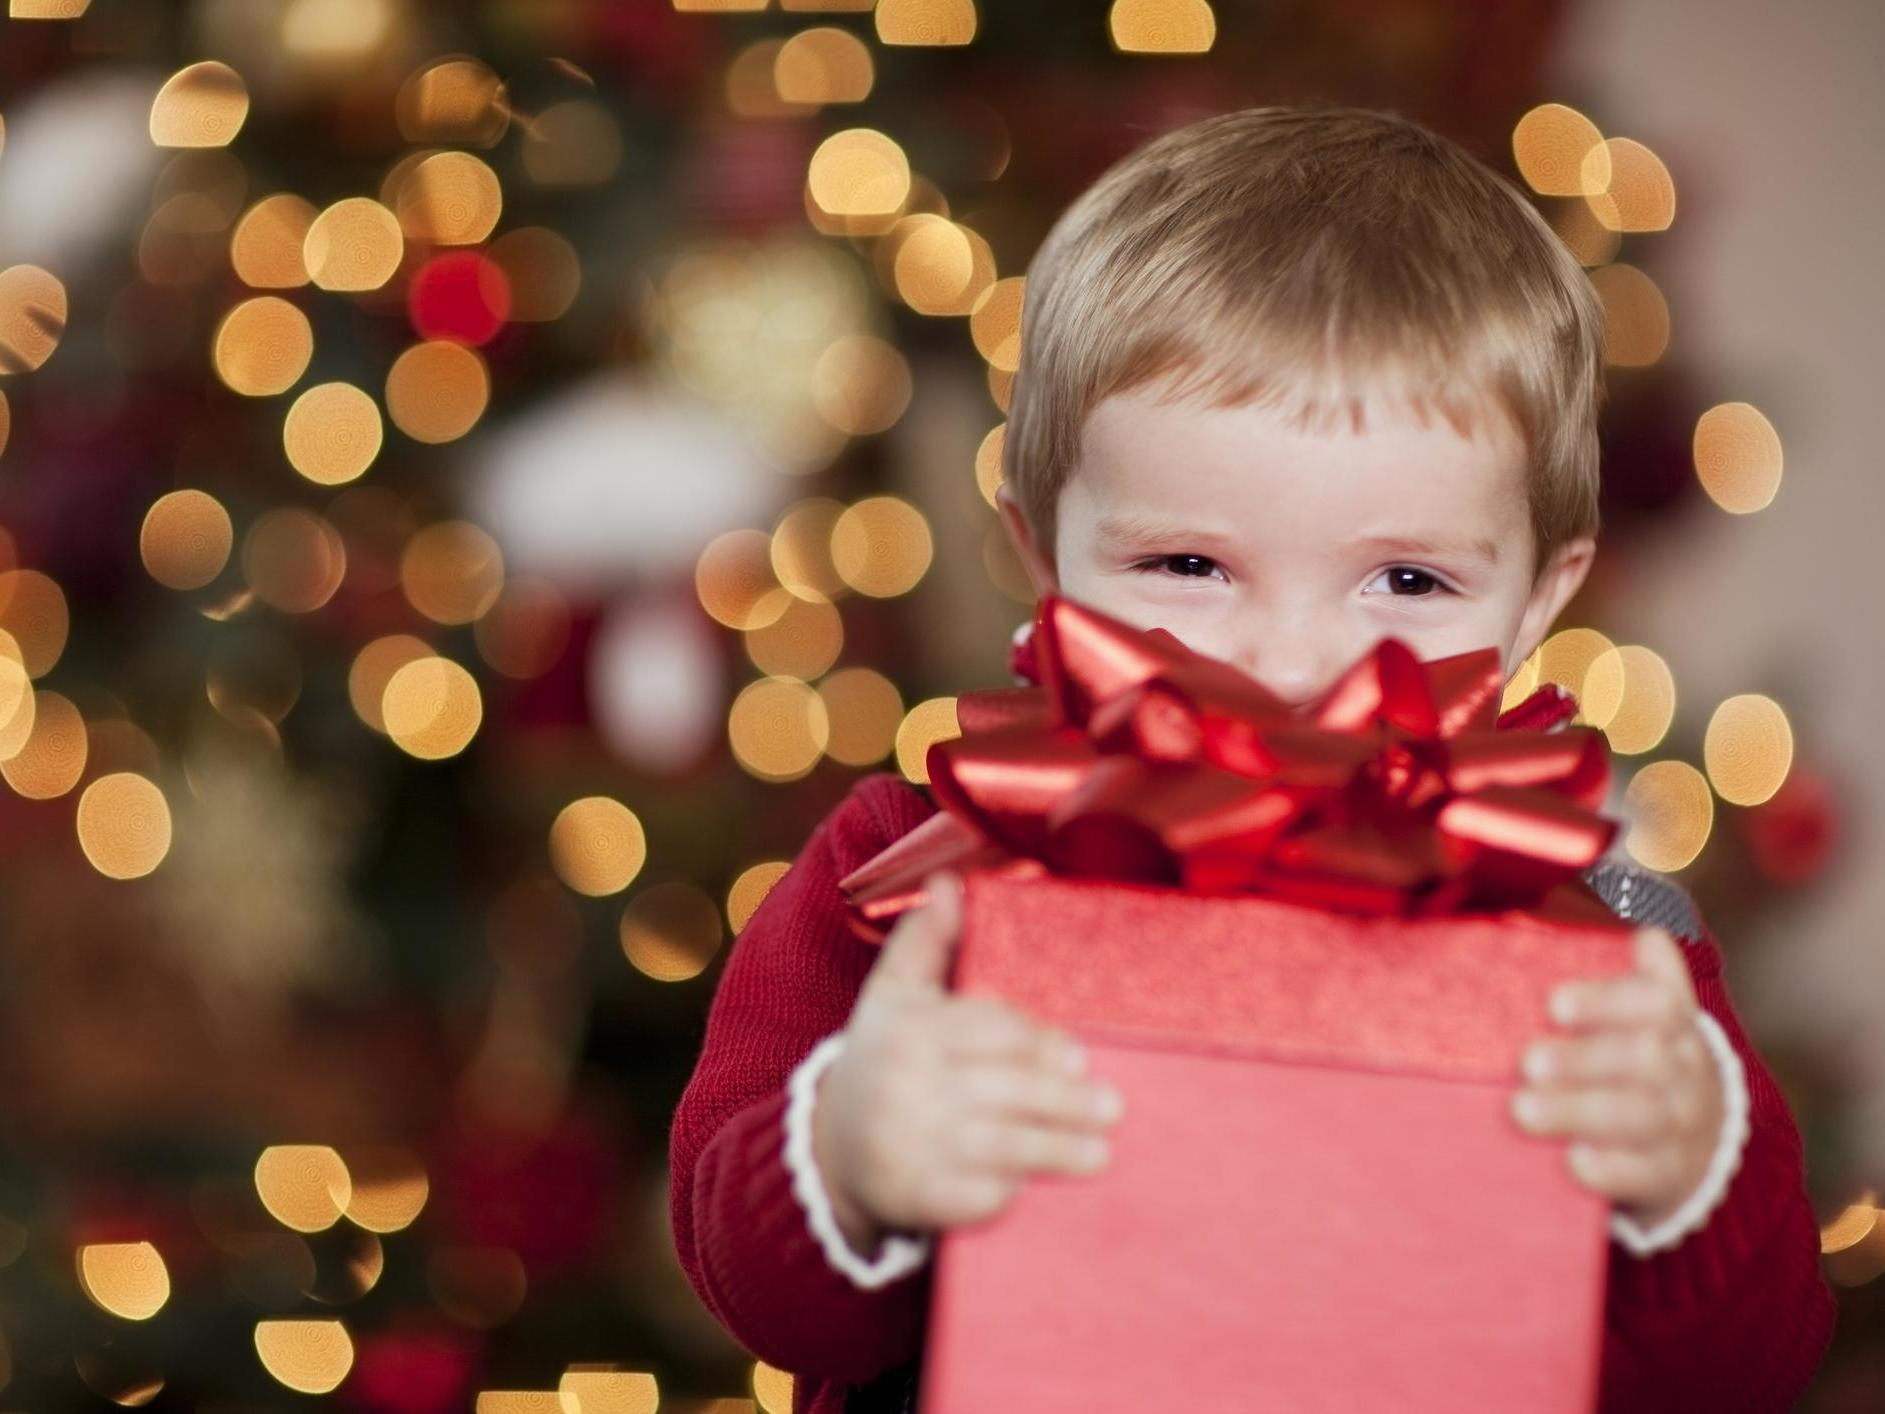 Games consoles and Lego named most-wanted Christmas gifts by children